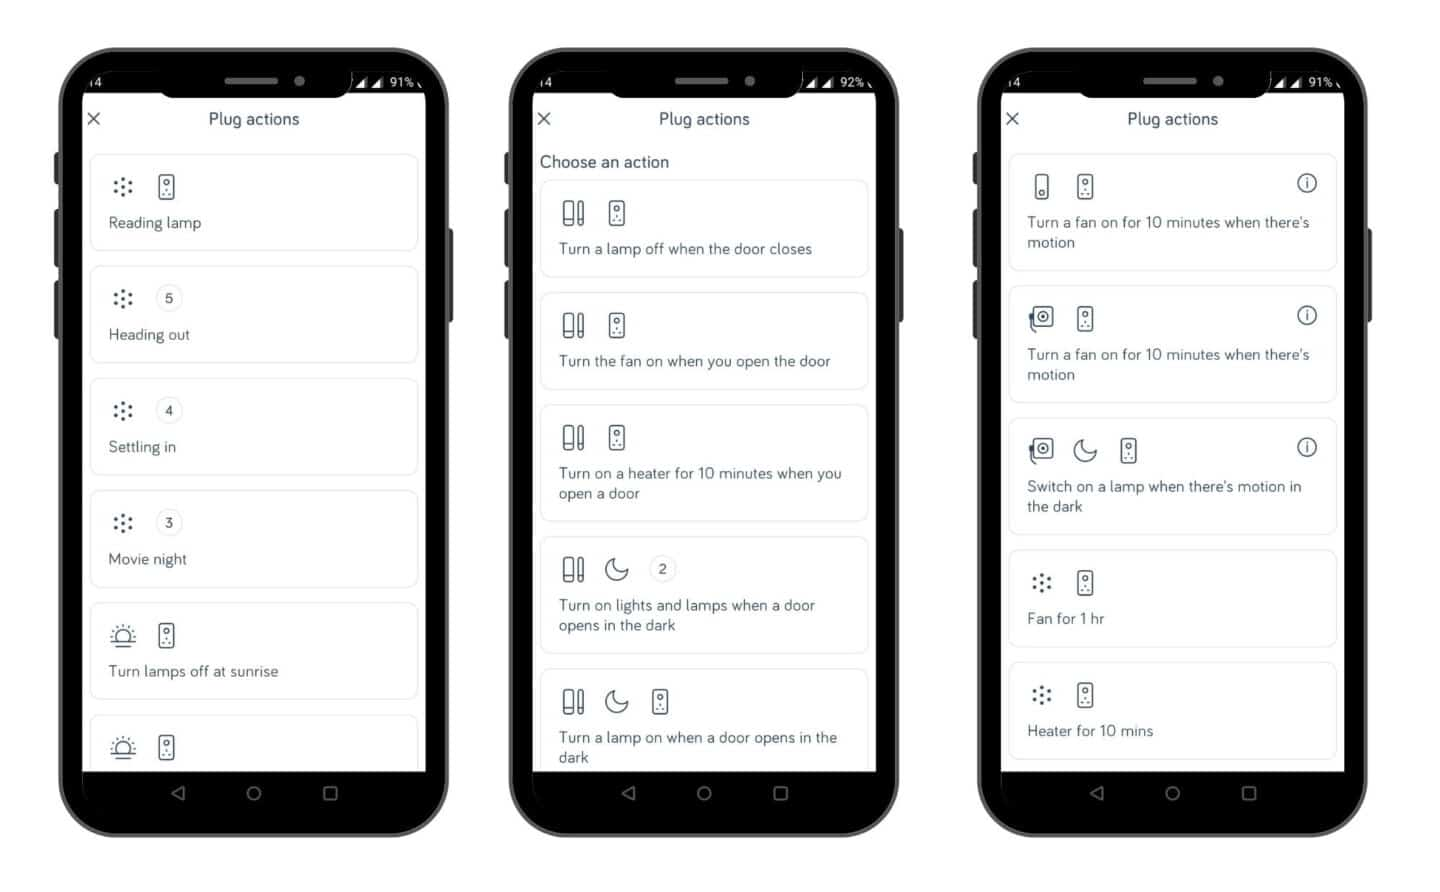 Screenshots of creating actions when using Hive smart devices